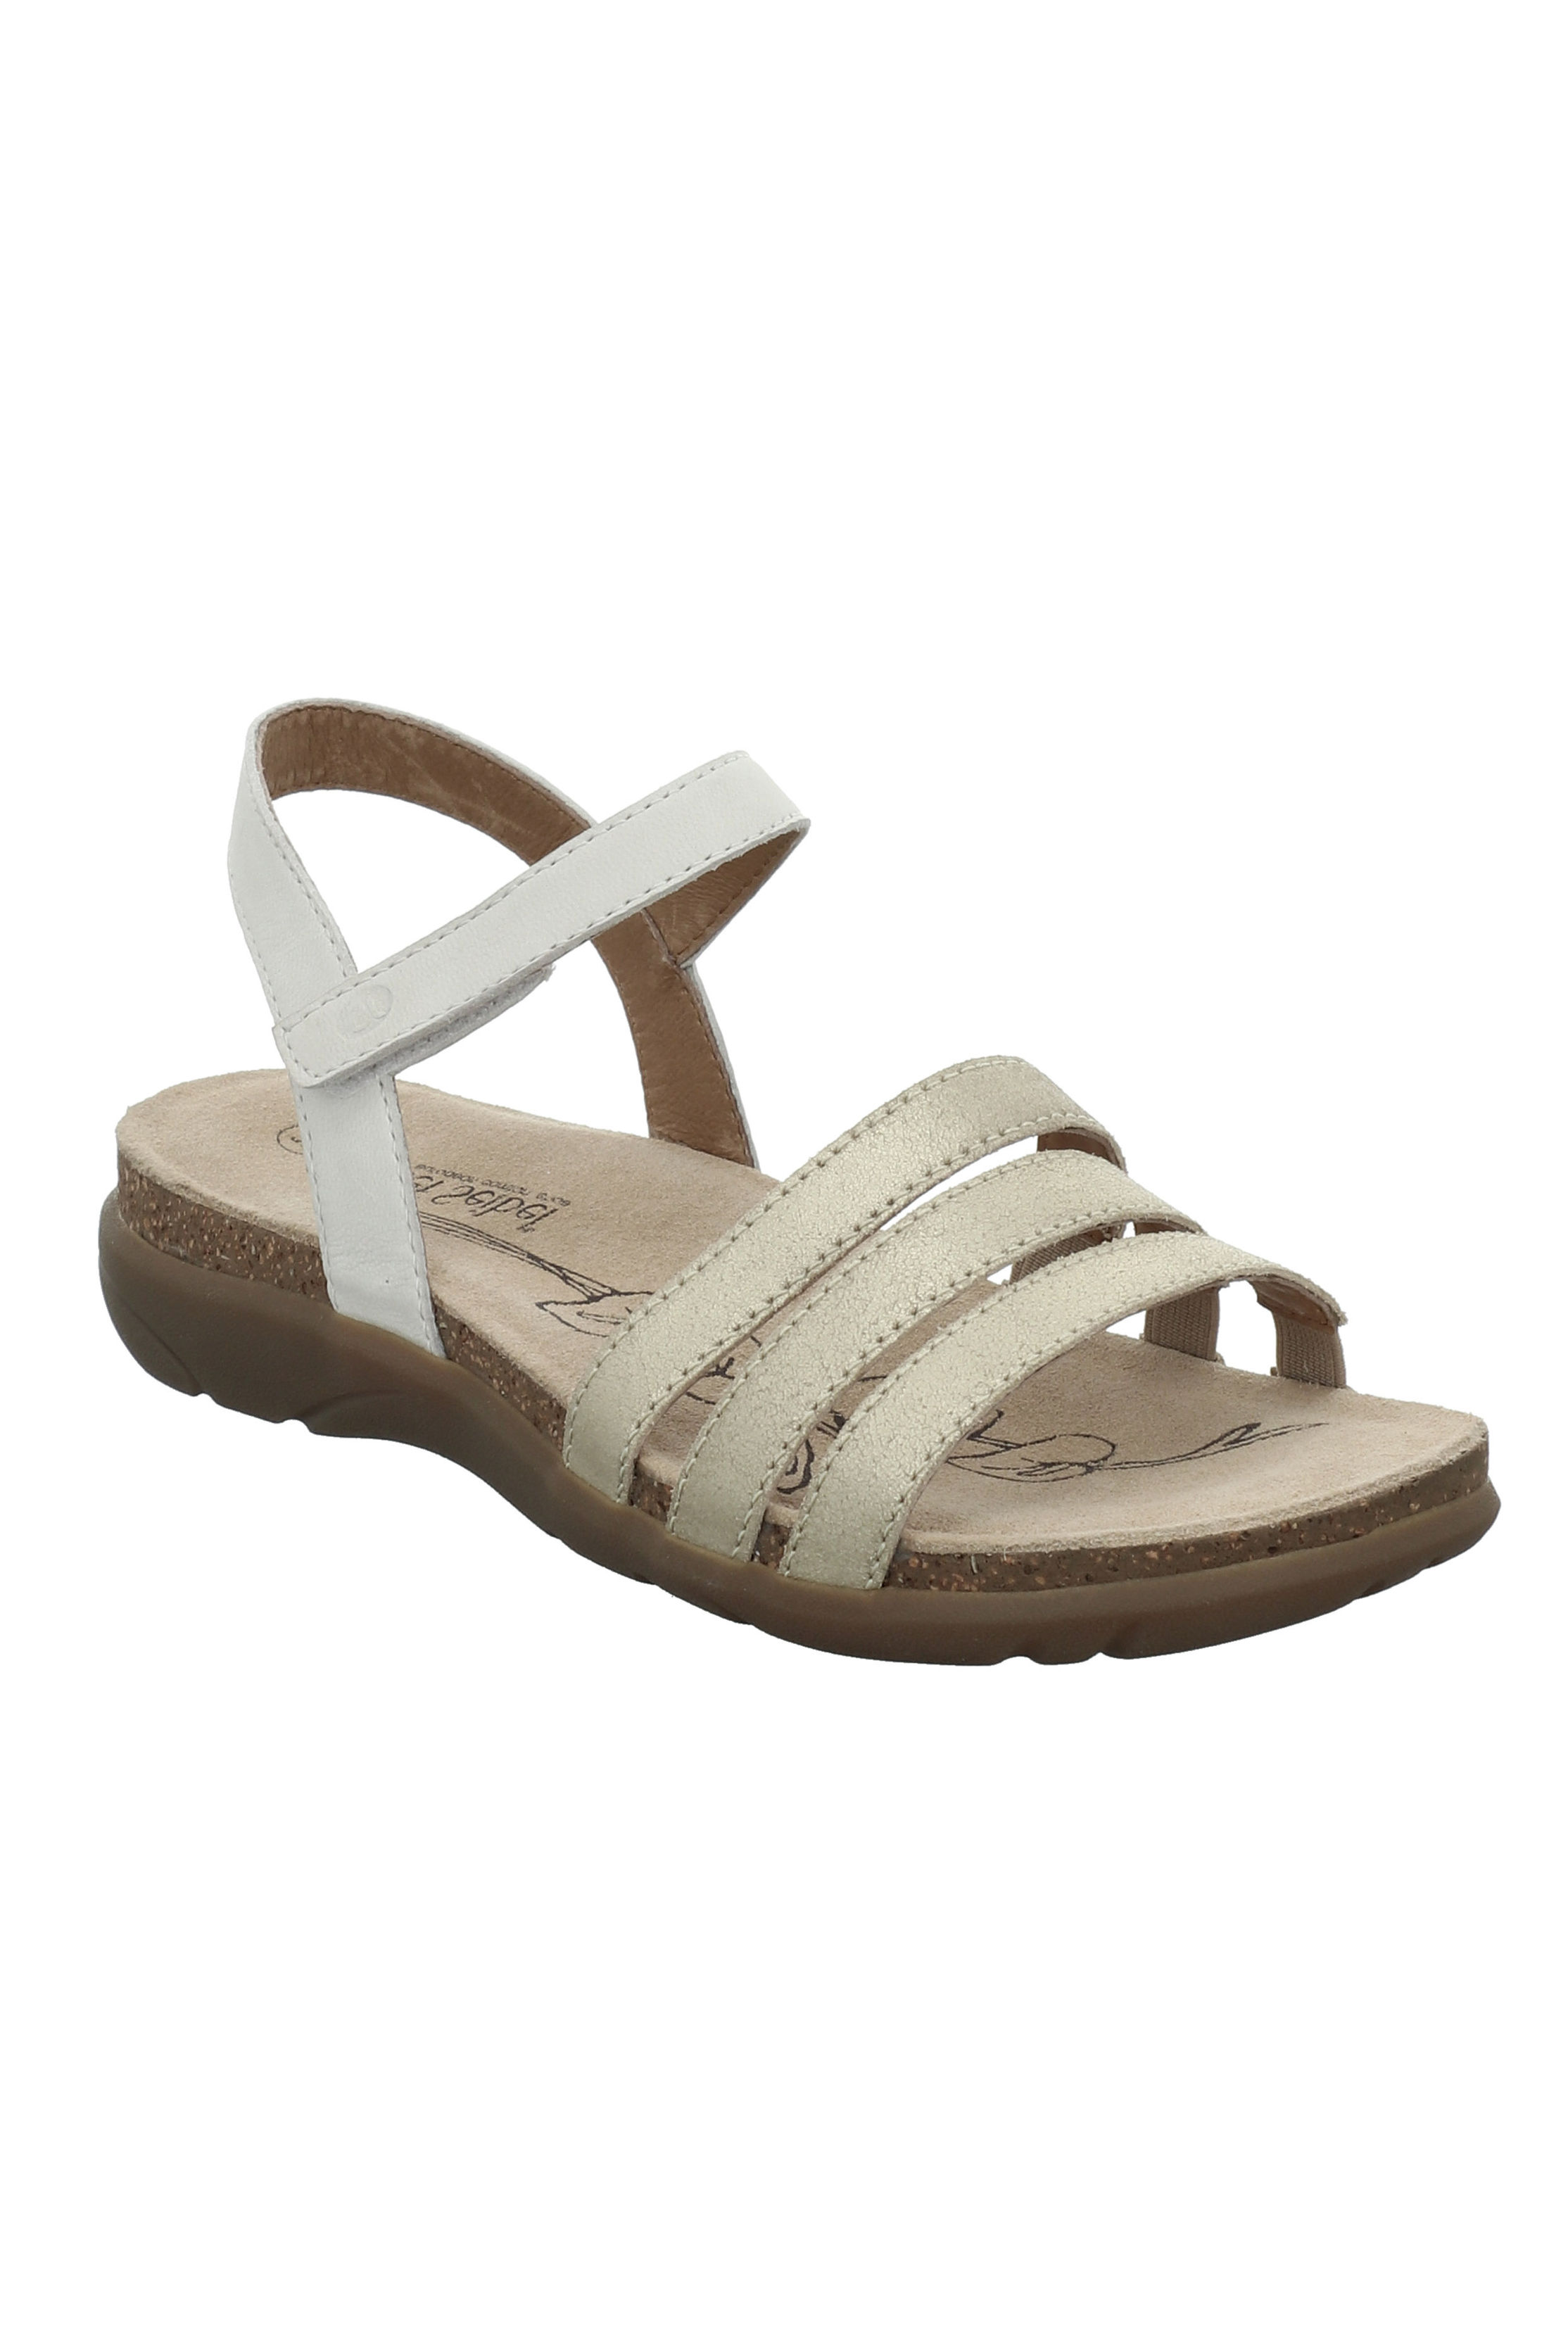 Josef Seibel Riley 01 Leather Sandal